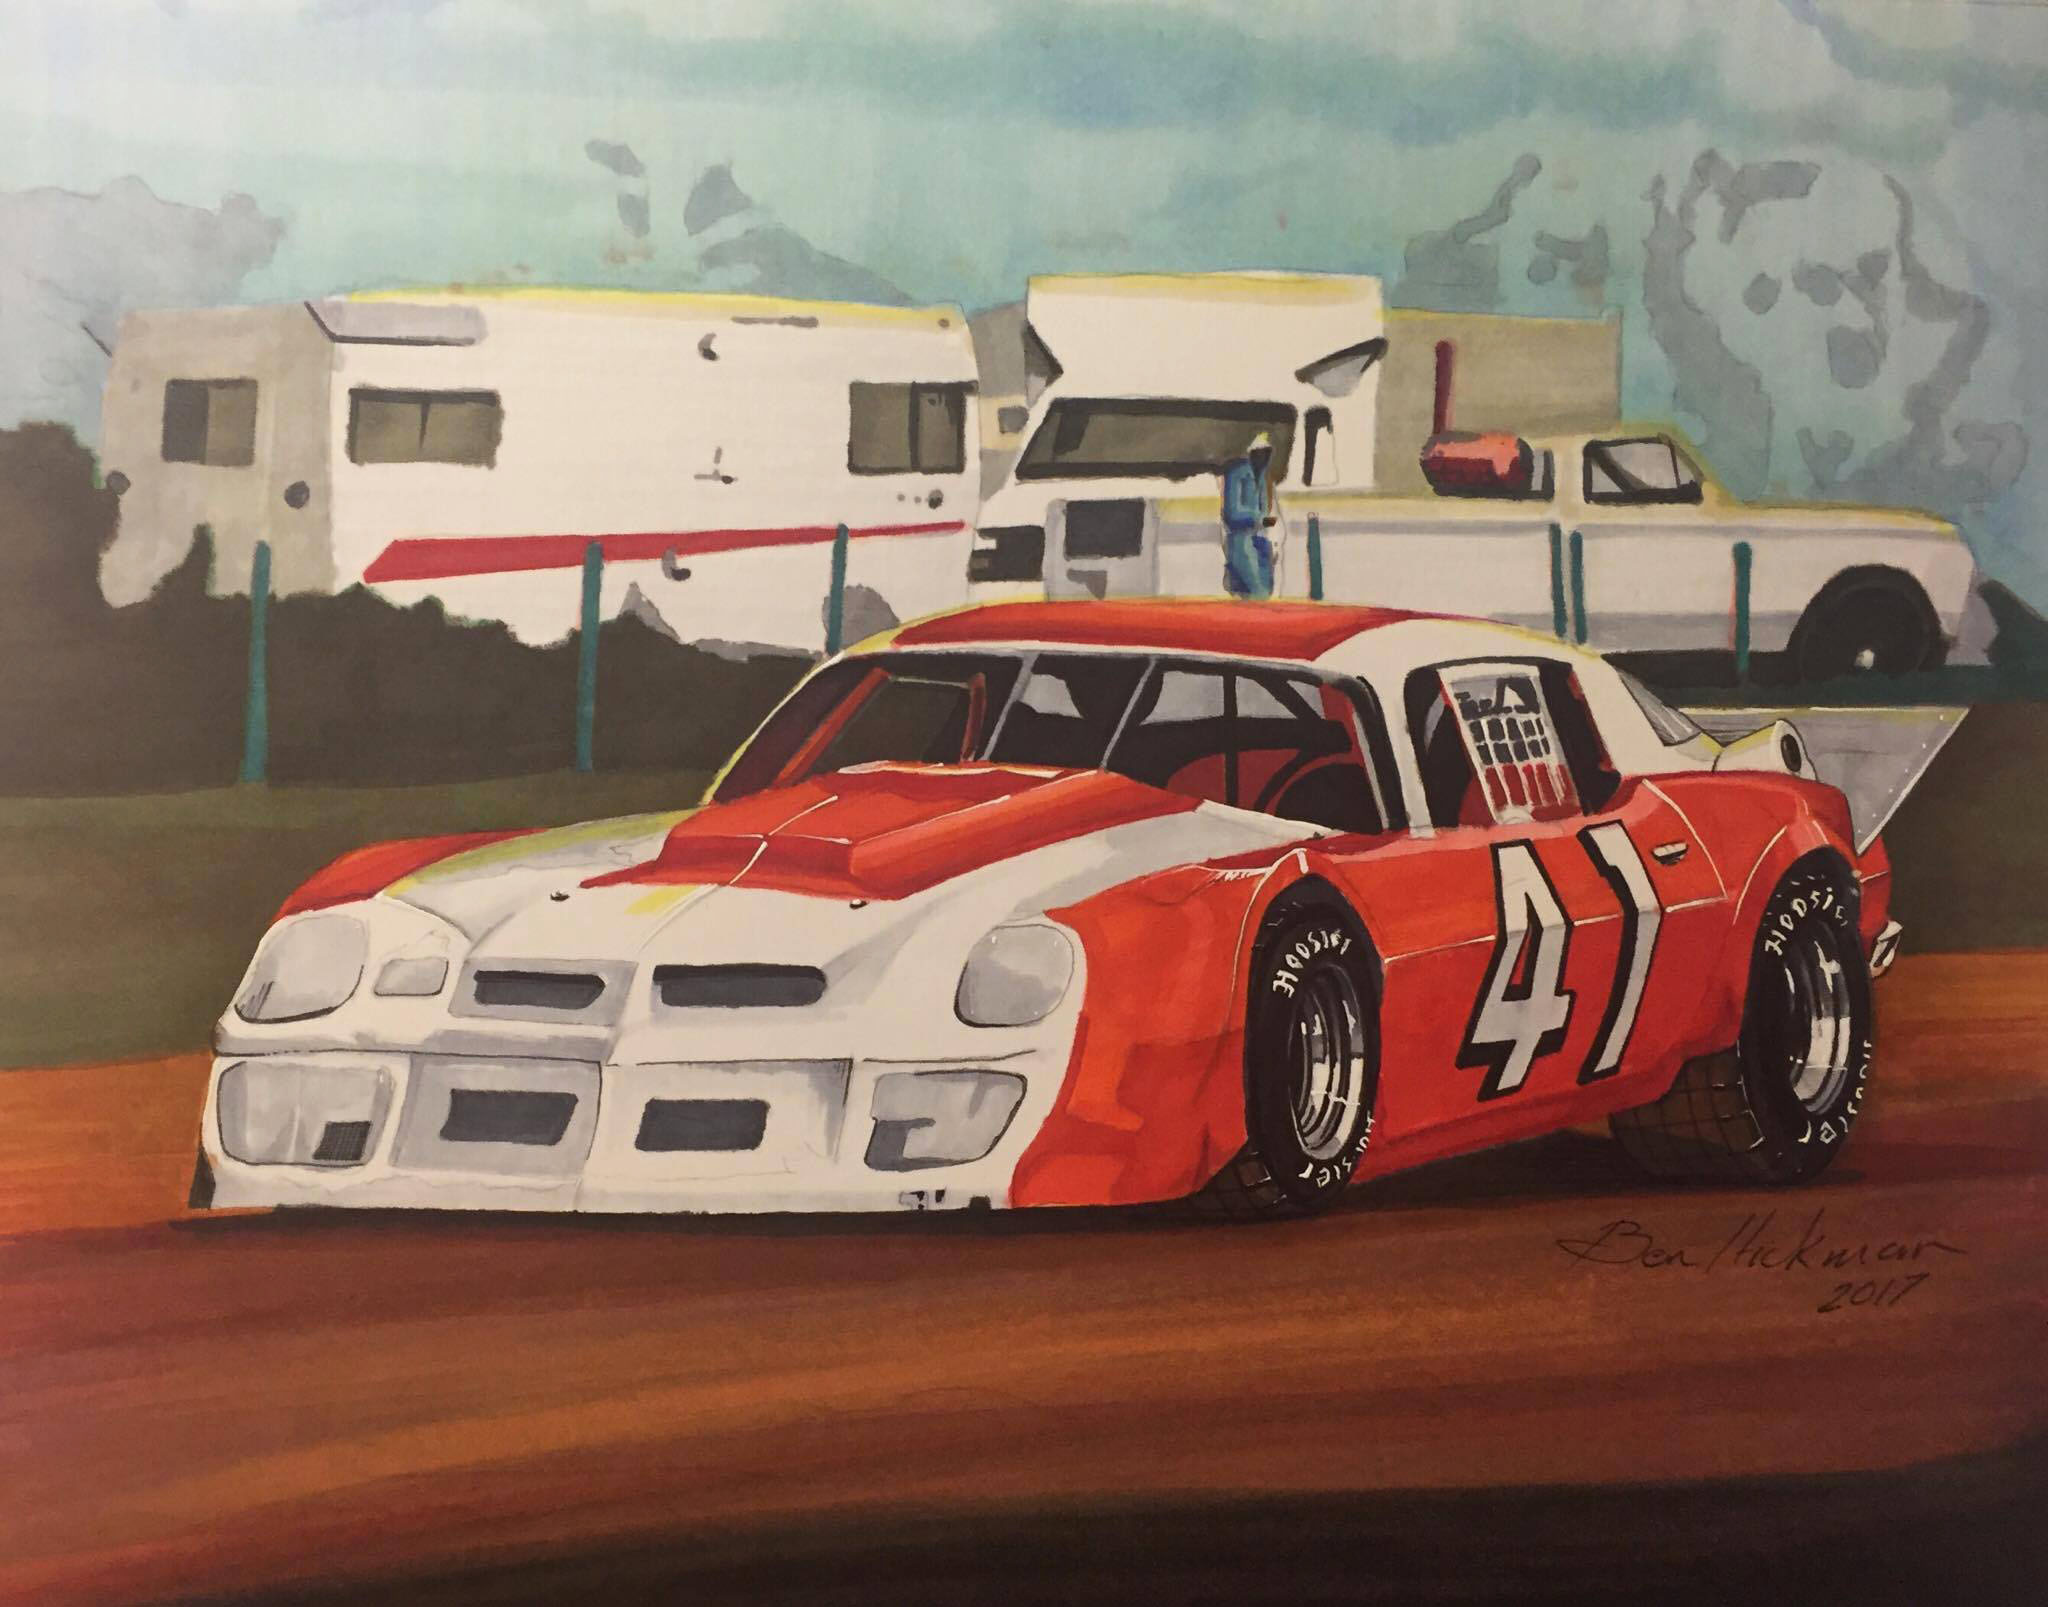 2048x1607 Old F Body Race Car Love The Late 70s Late Models. Copic Markers